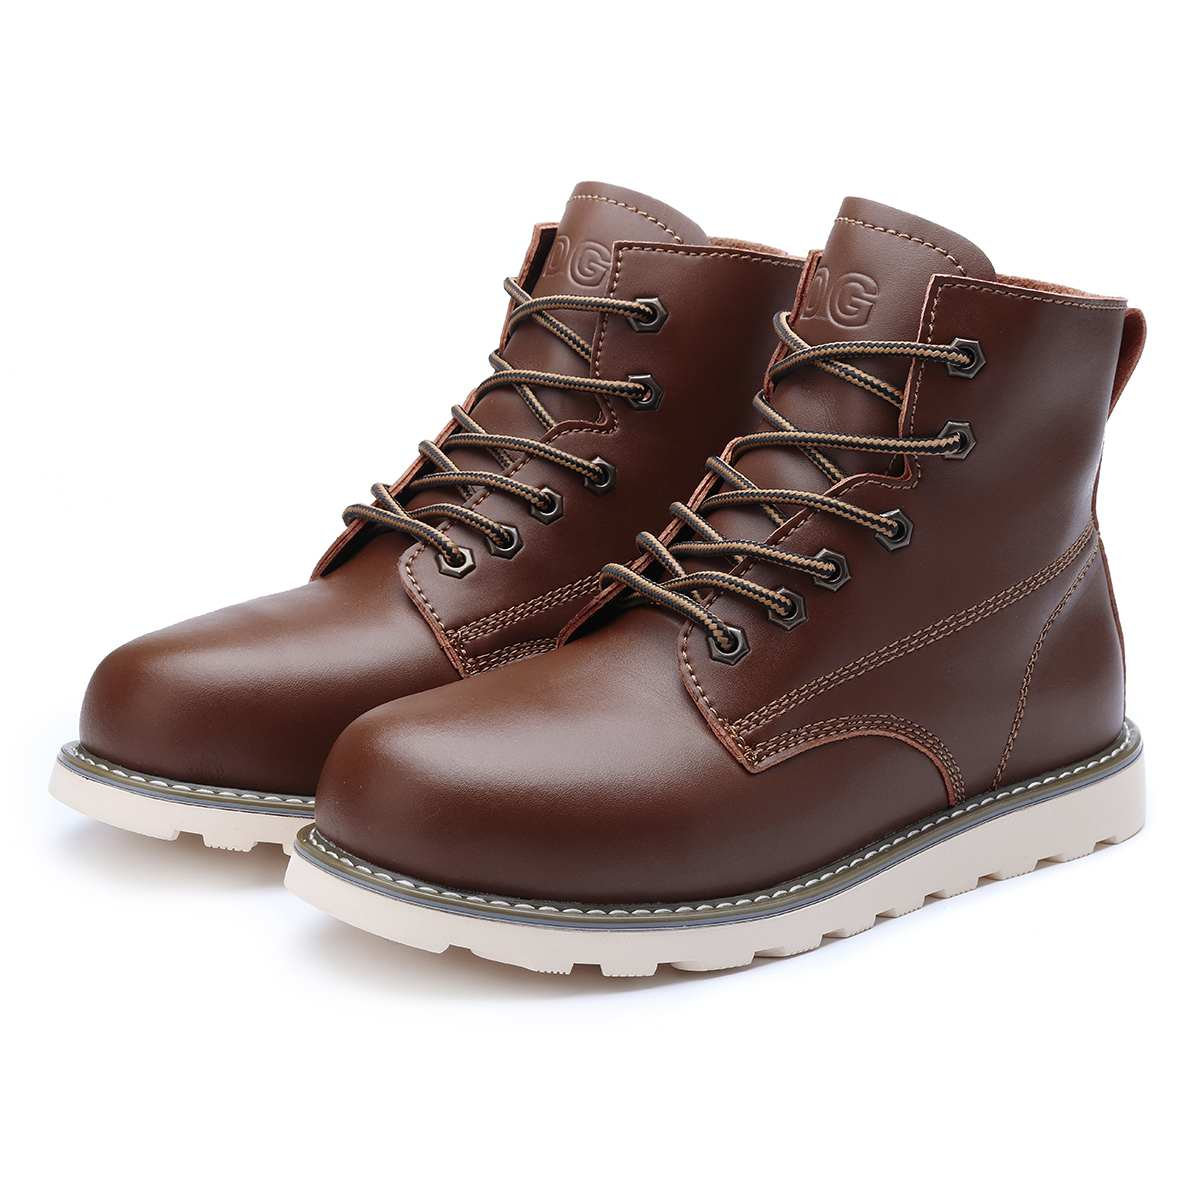 e1027cc0733 NIS Men Safety Work Boots Spring Summer Casual Shoes Men Motorcycle Boots  anti-smashing Anti-puncture Knight Safety Shoes New